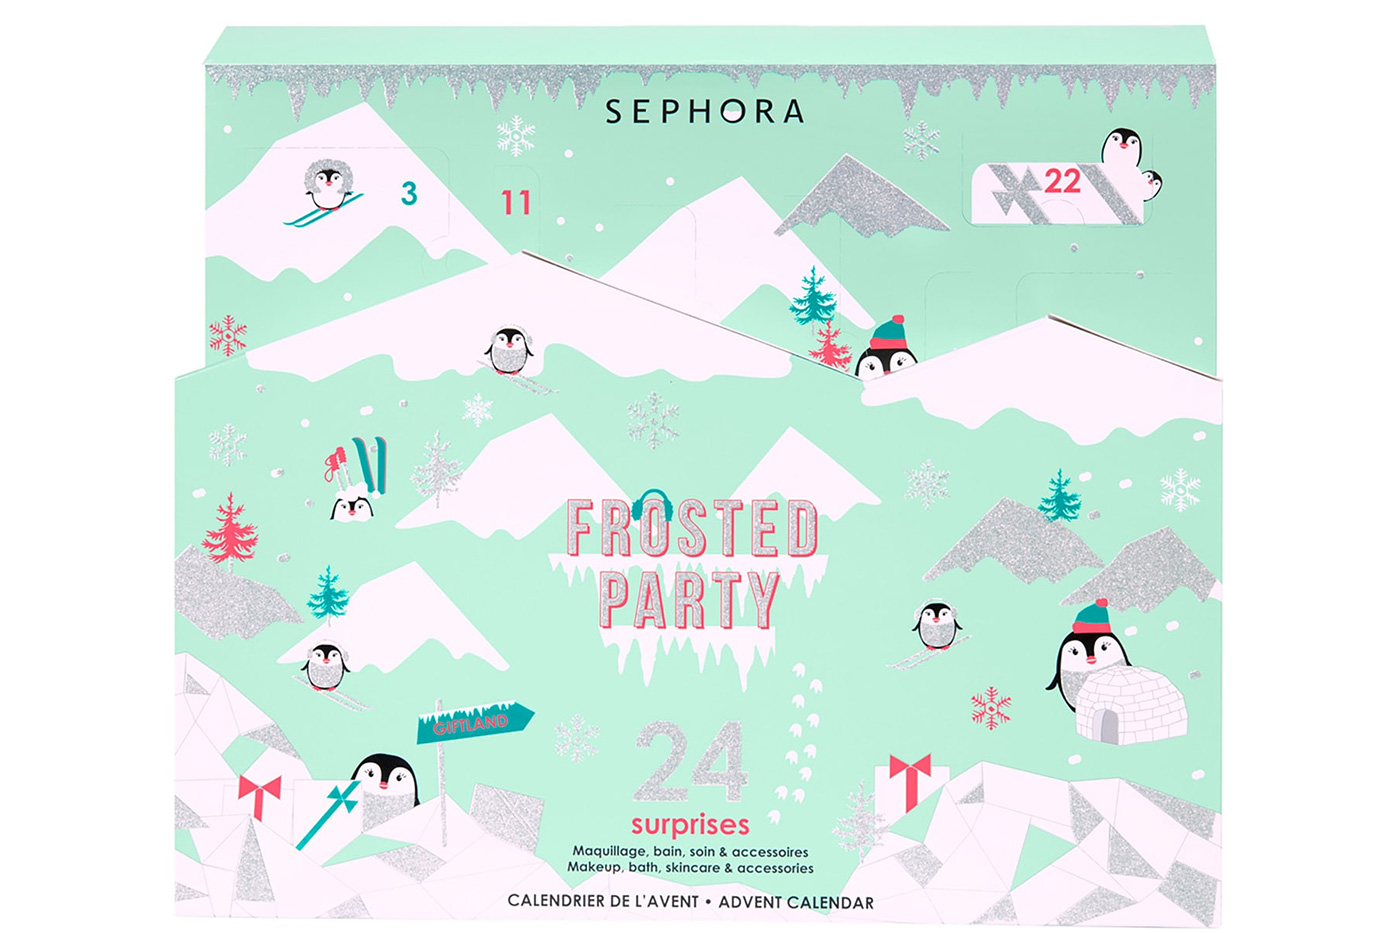 calendrier-de-lavent-sephora-2019-frosted-party